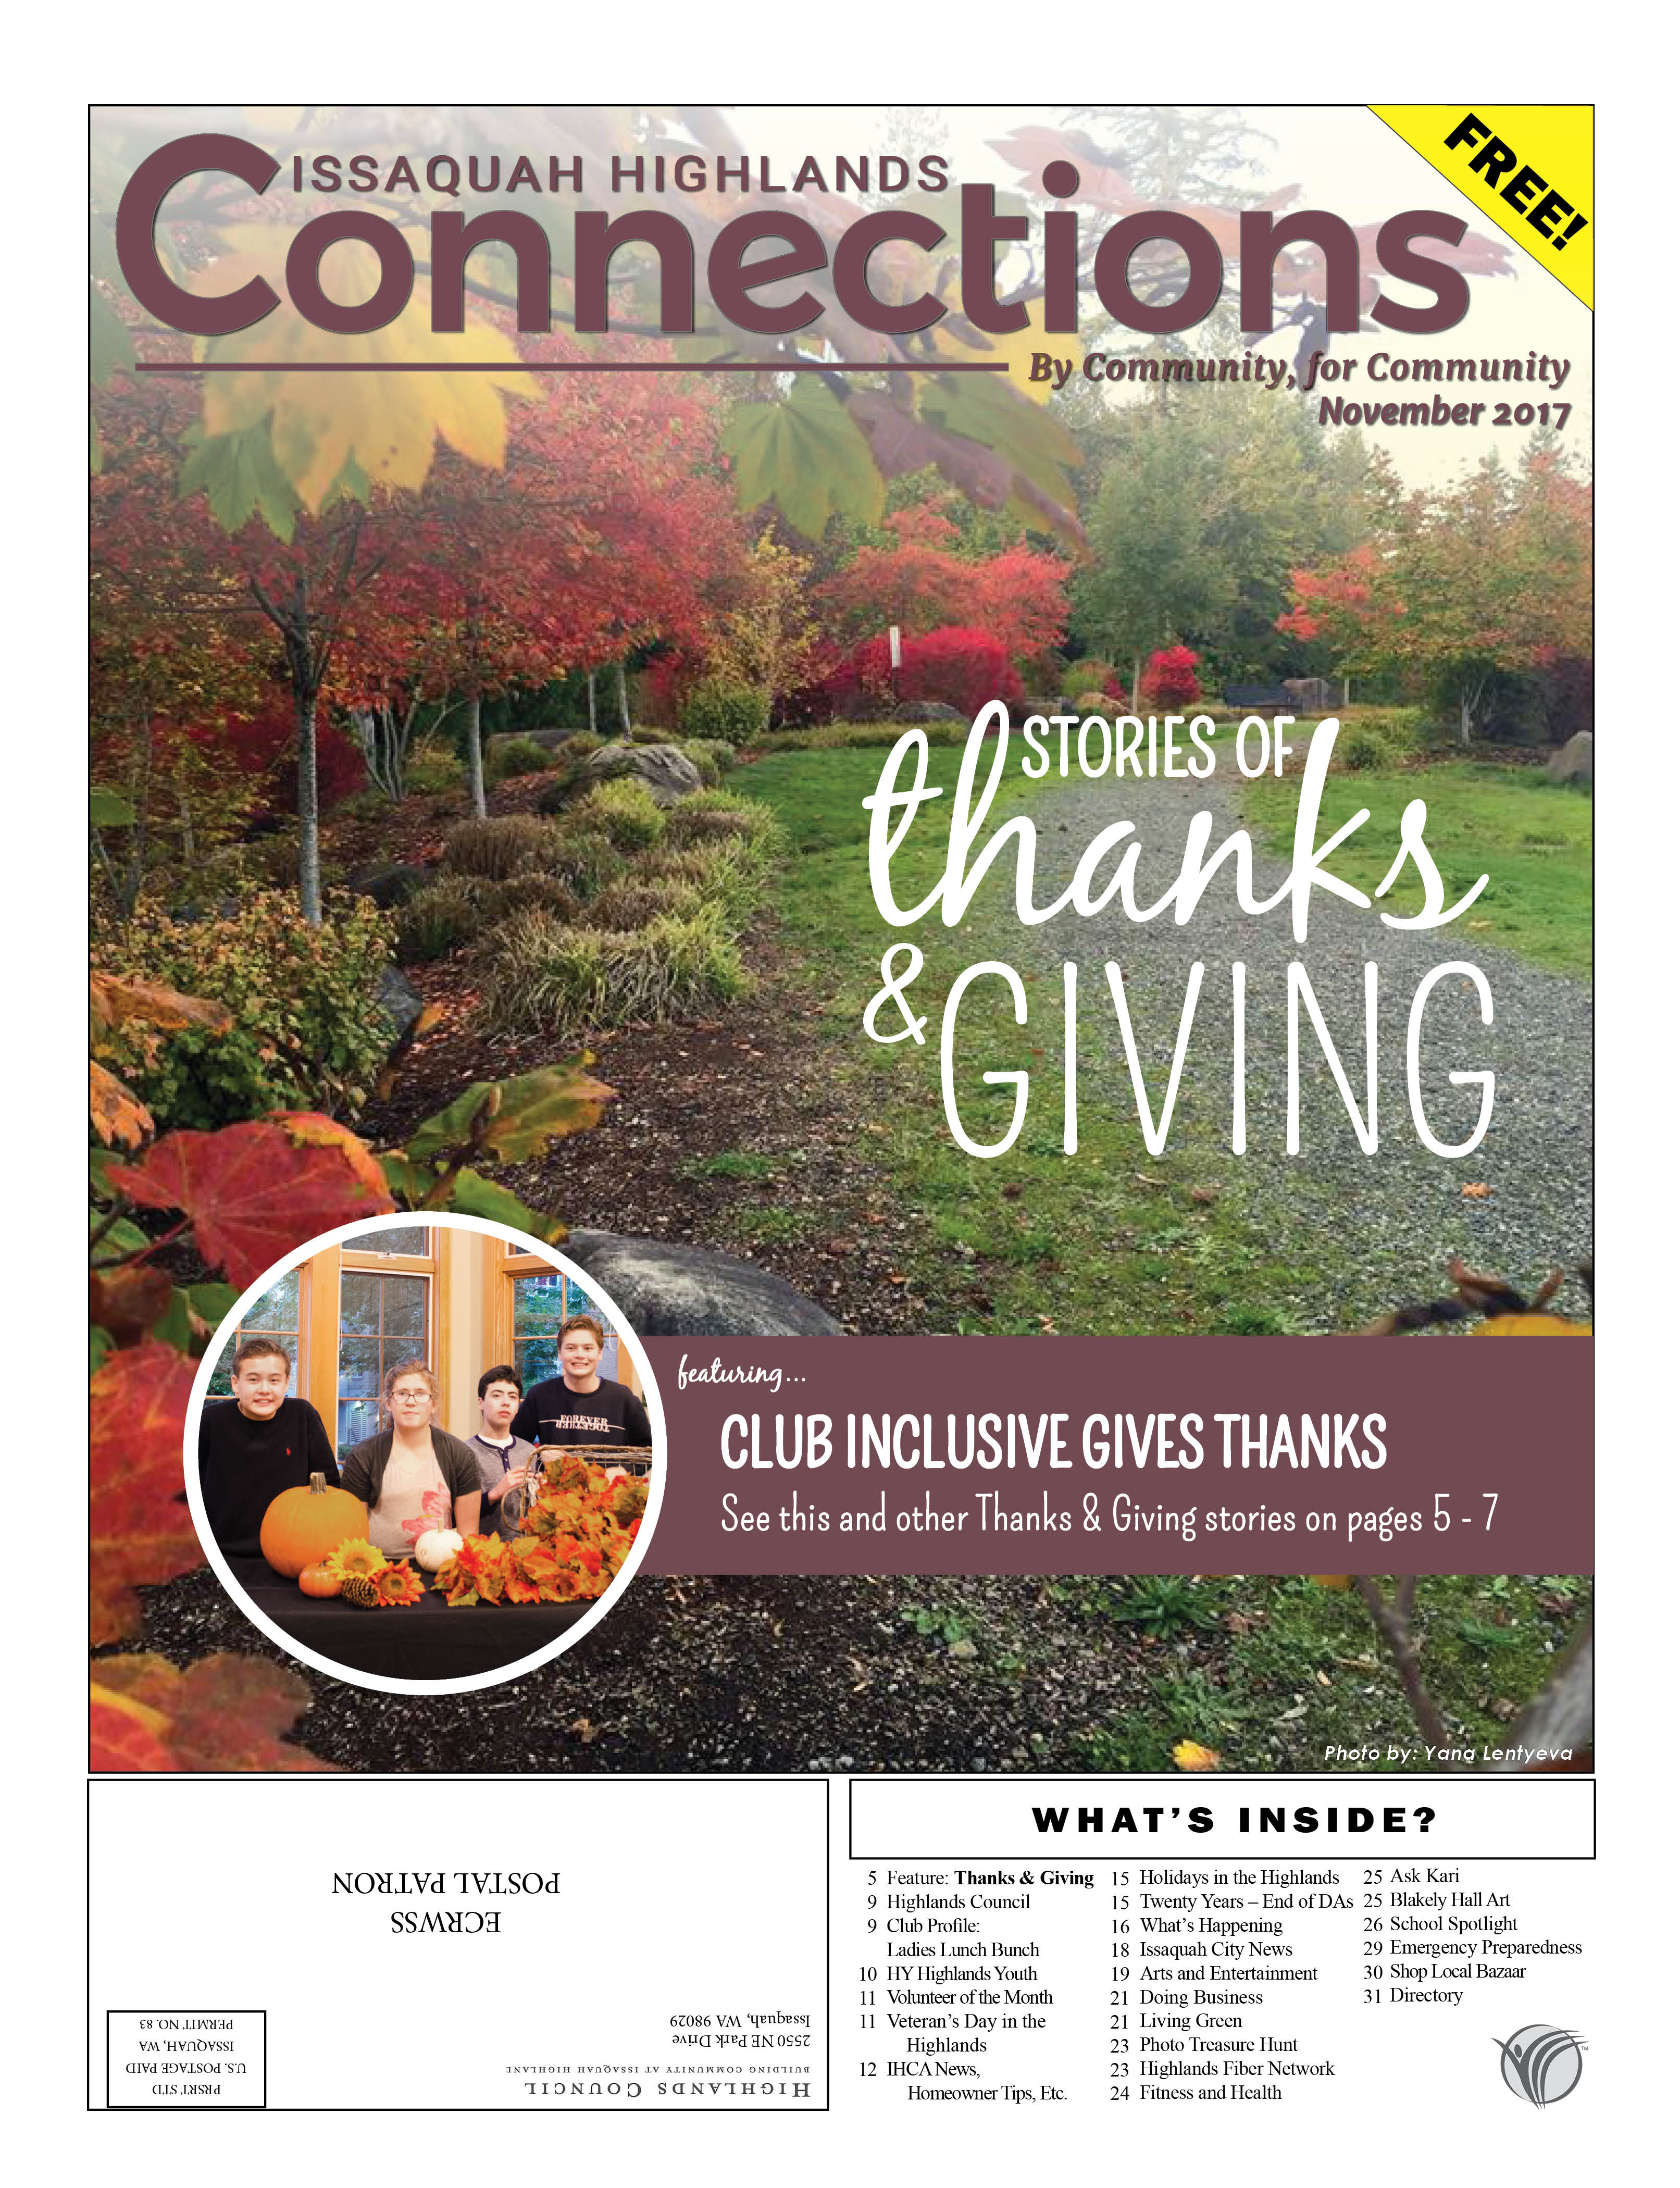 November 2017 Connections